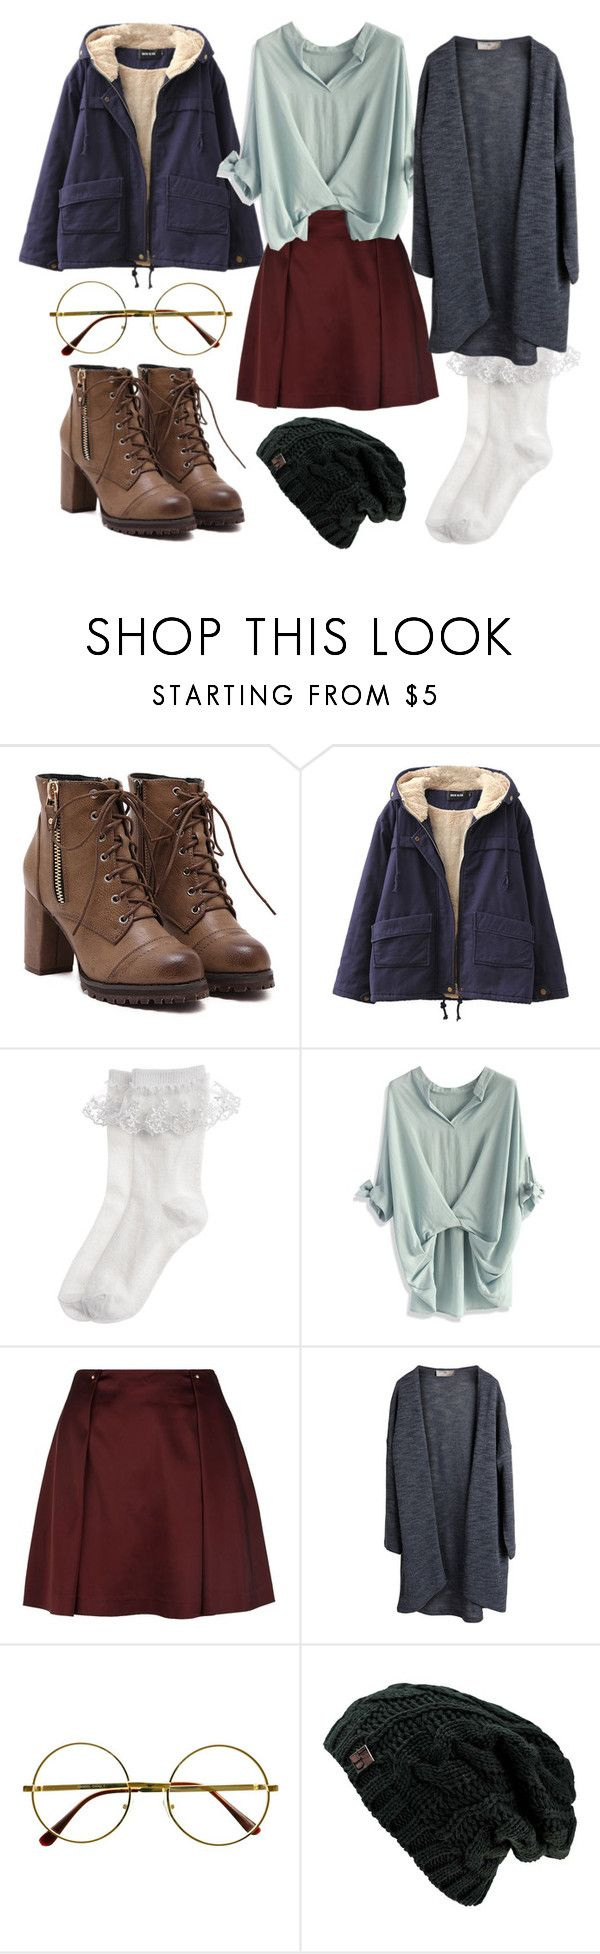 """""""Boys Over Flowers - Winter"""" by haruhii ❤ liked on Polyvore featuring Chicnova Fashion, Monsoon, Chicwish, Reiss, Pieces and Retrò"""